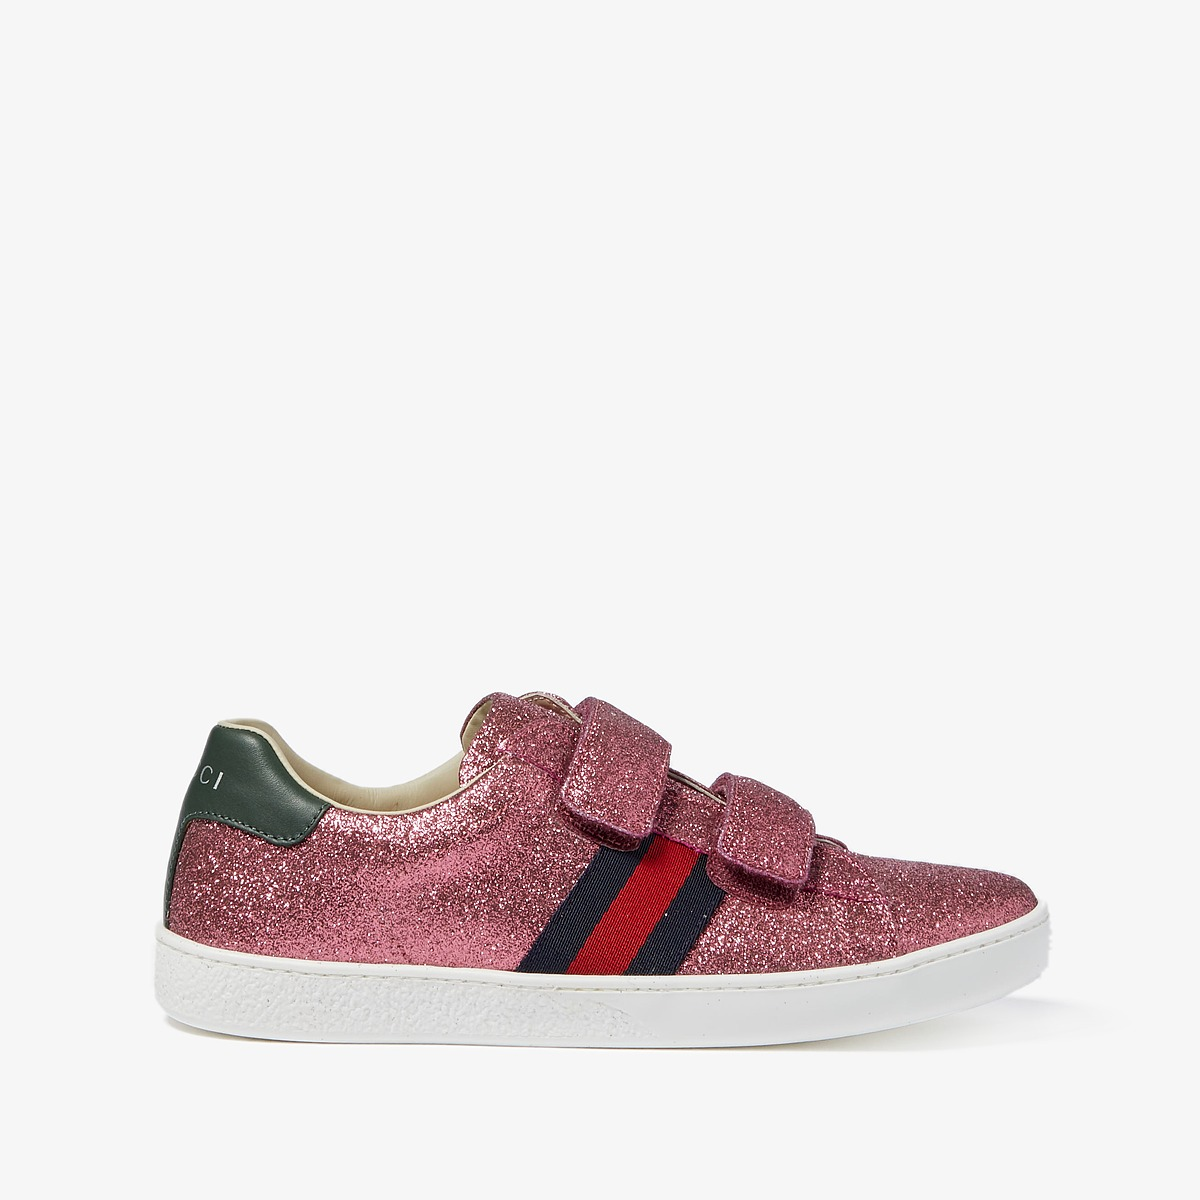 Gucci Kids New Ace V.L. Sneakers (Little Kid/Big Kid) (Medium Green/Rose) Kids Shoes